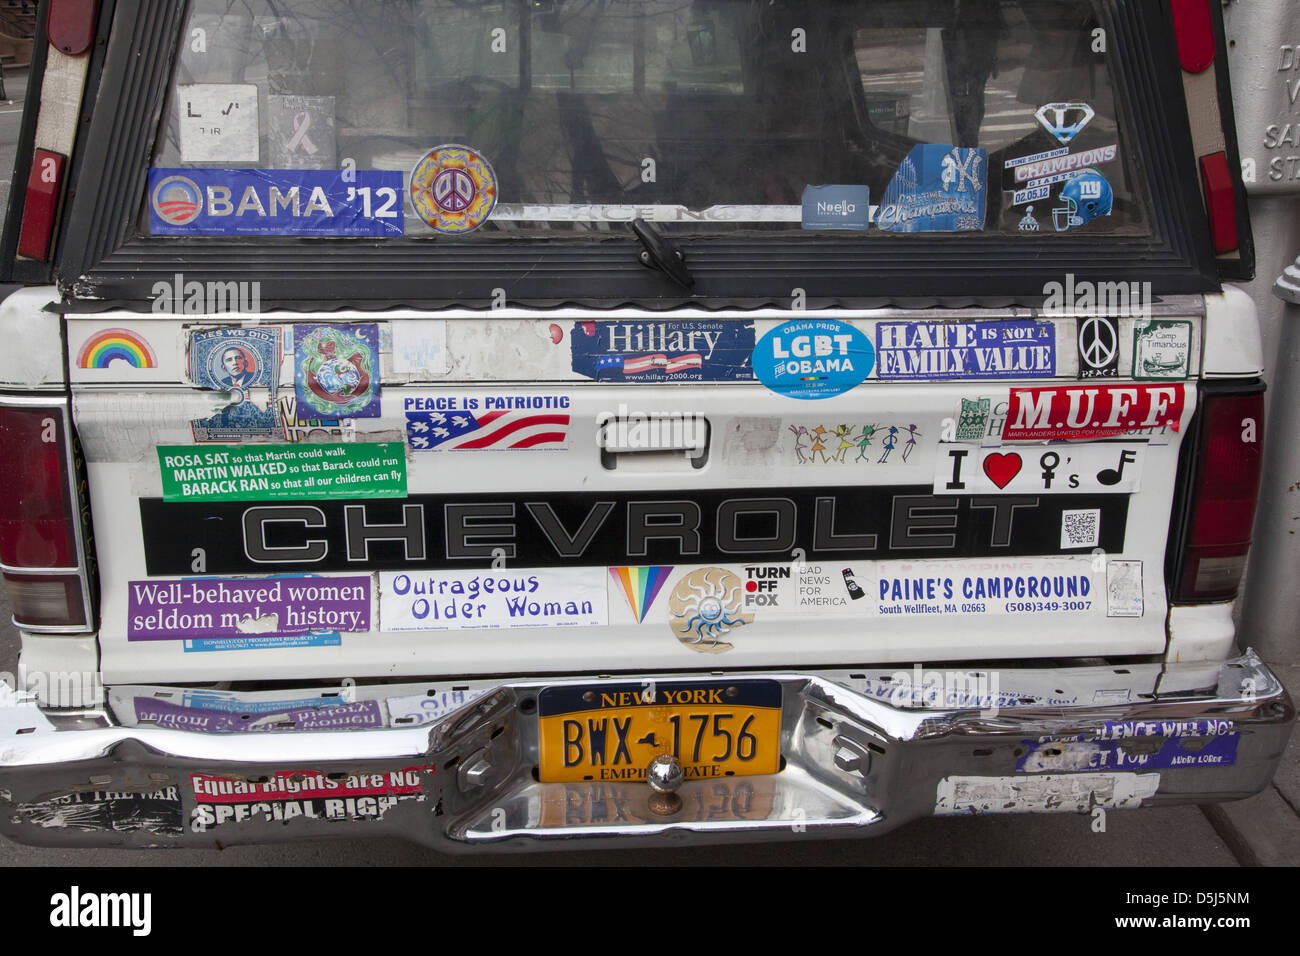 Bumper stickers on the rear end of a minivan parked in brooklyn ny